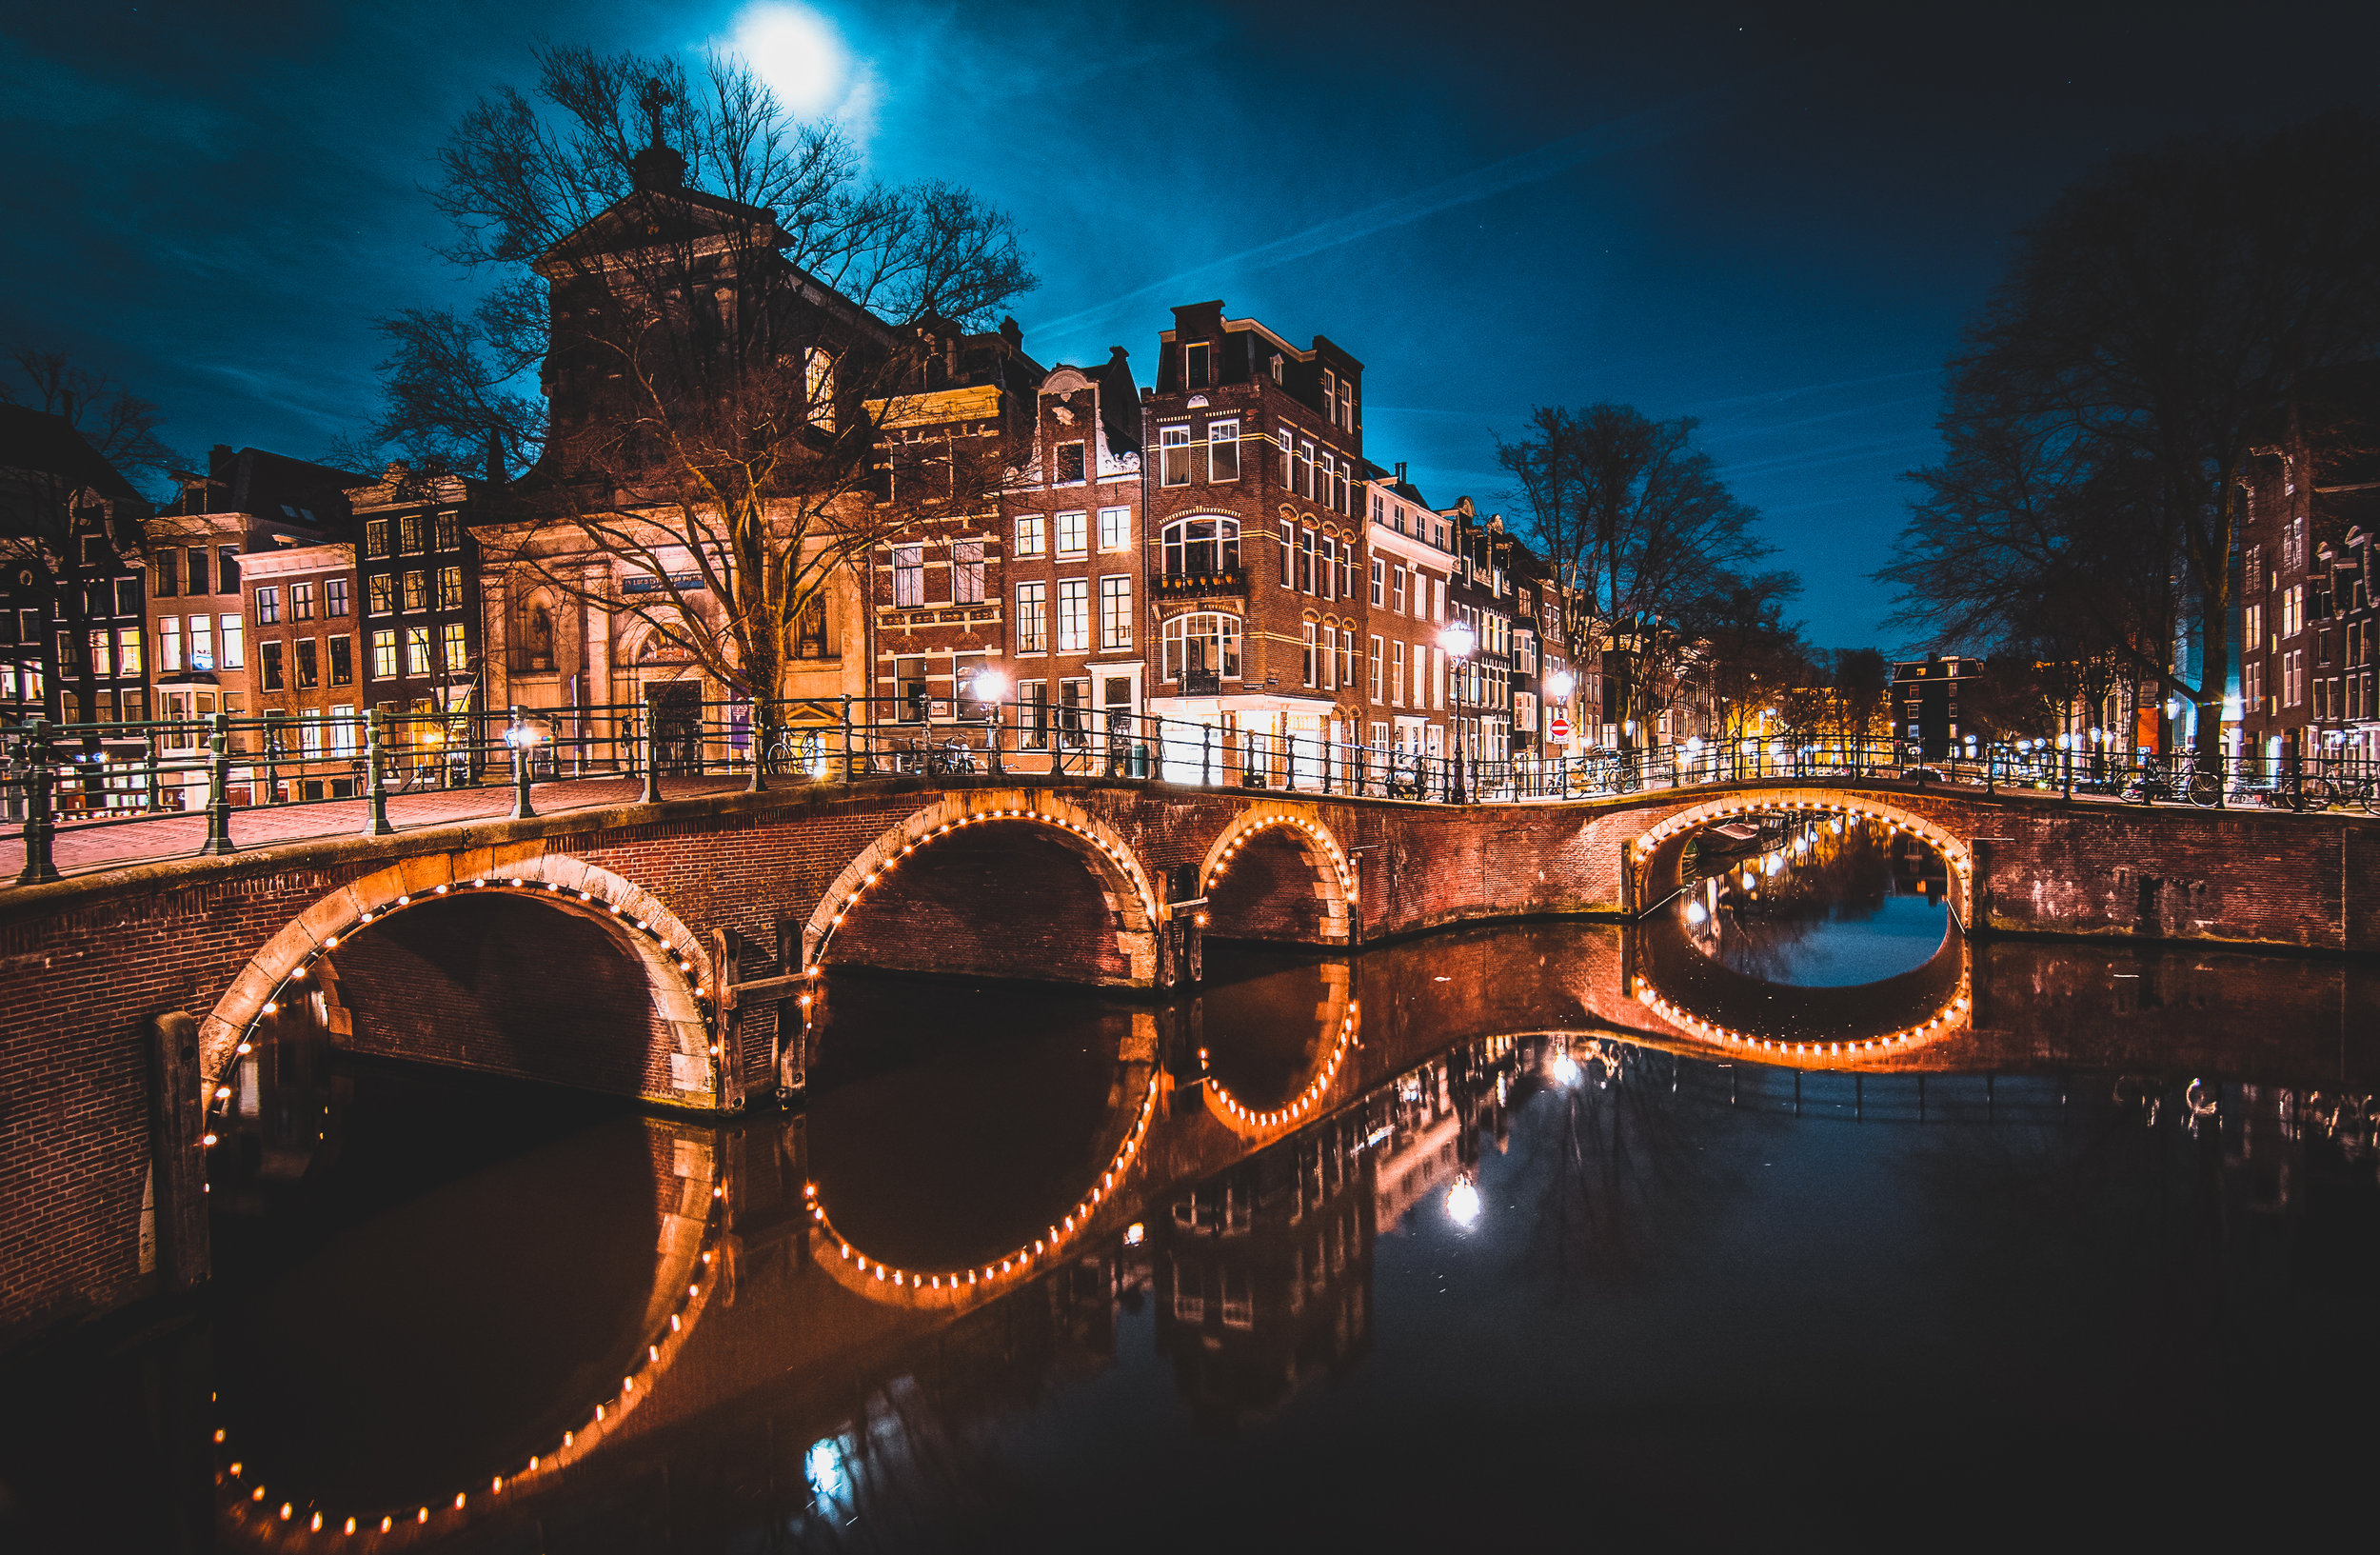 Seven Bridges. I tried for this shot the first time in Amsterdam and this perhaps turned out not as good actually. Oh well, third time's a charm!